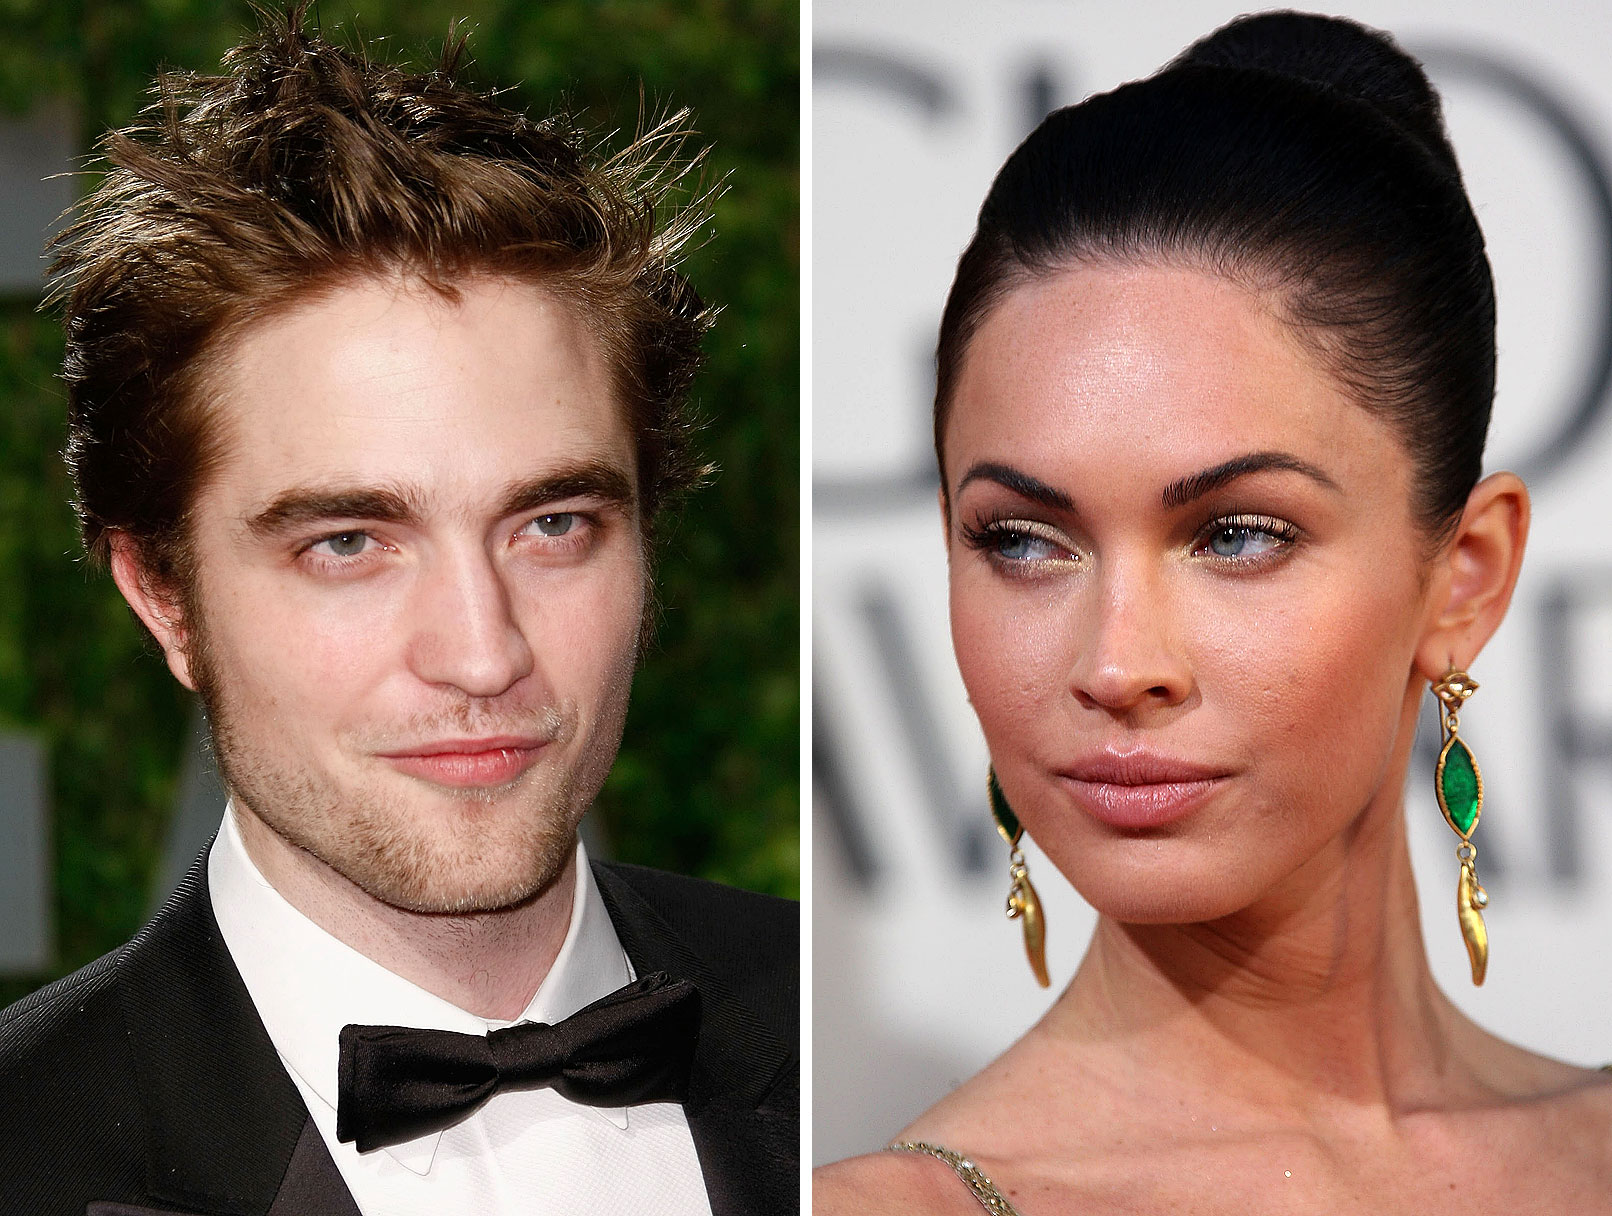 Robert Pattinson and Megan Fox: Meeting Up